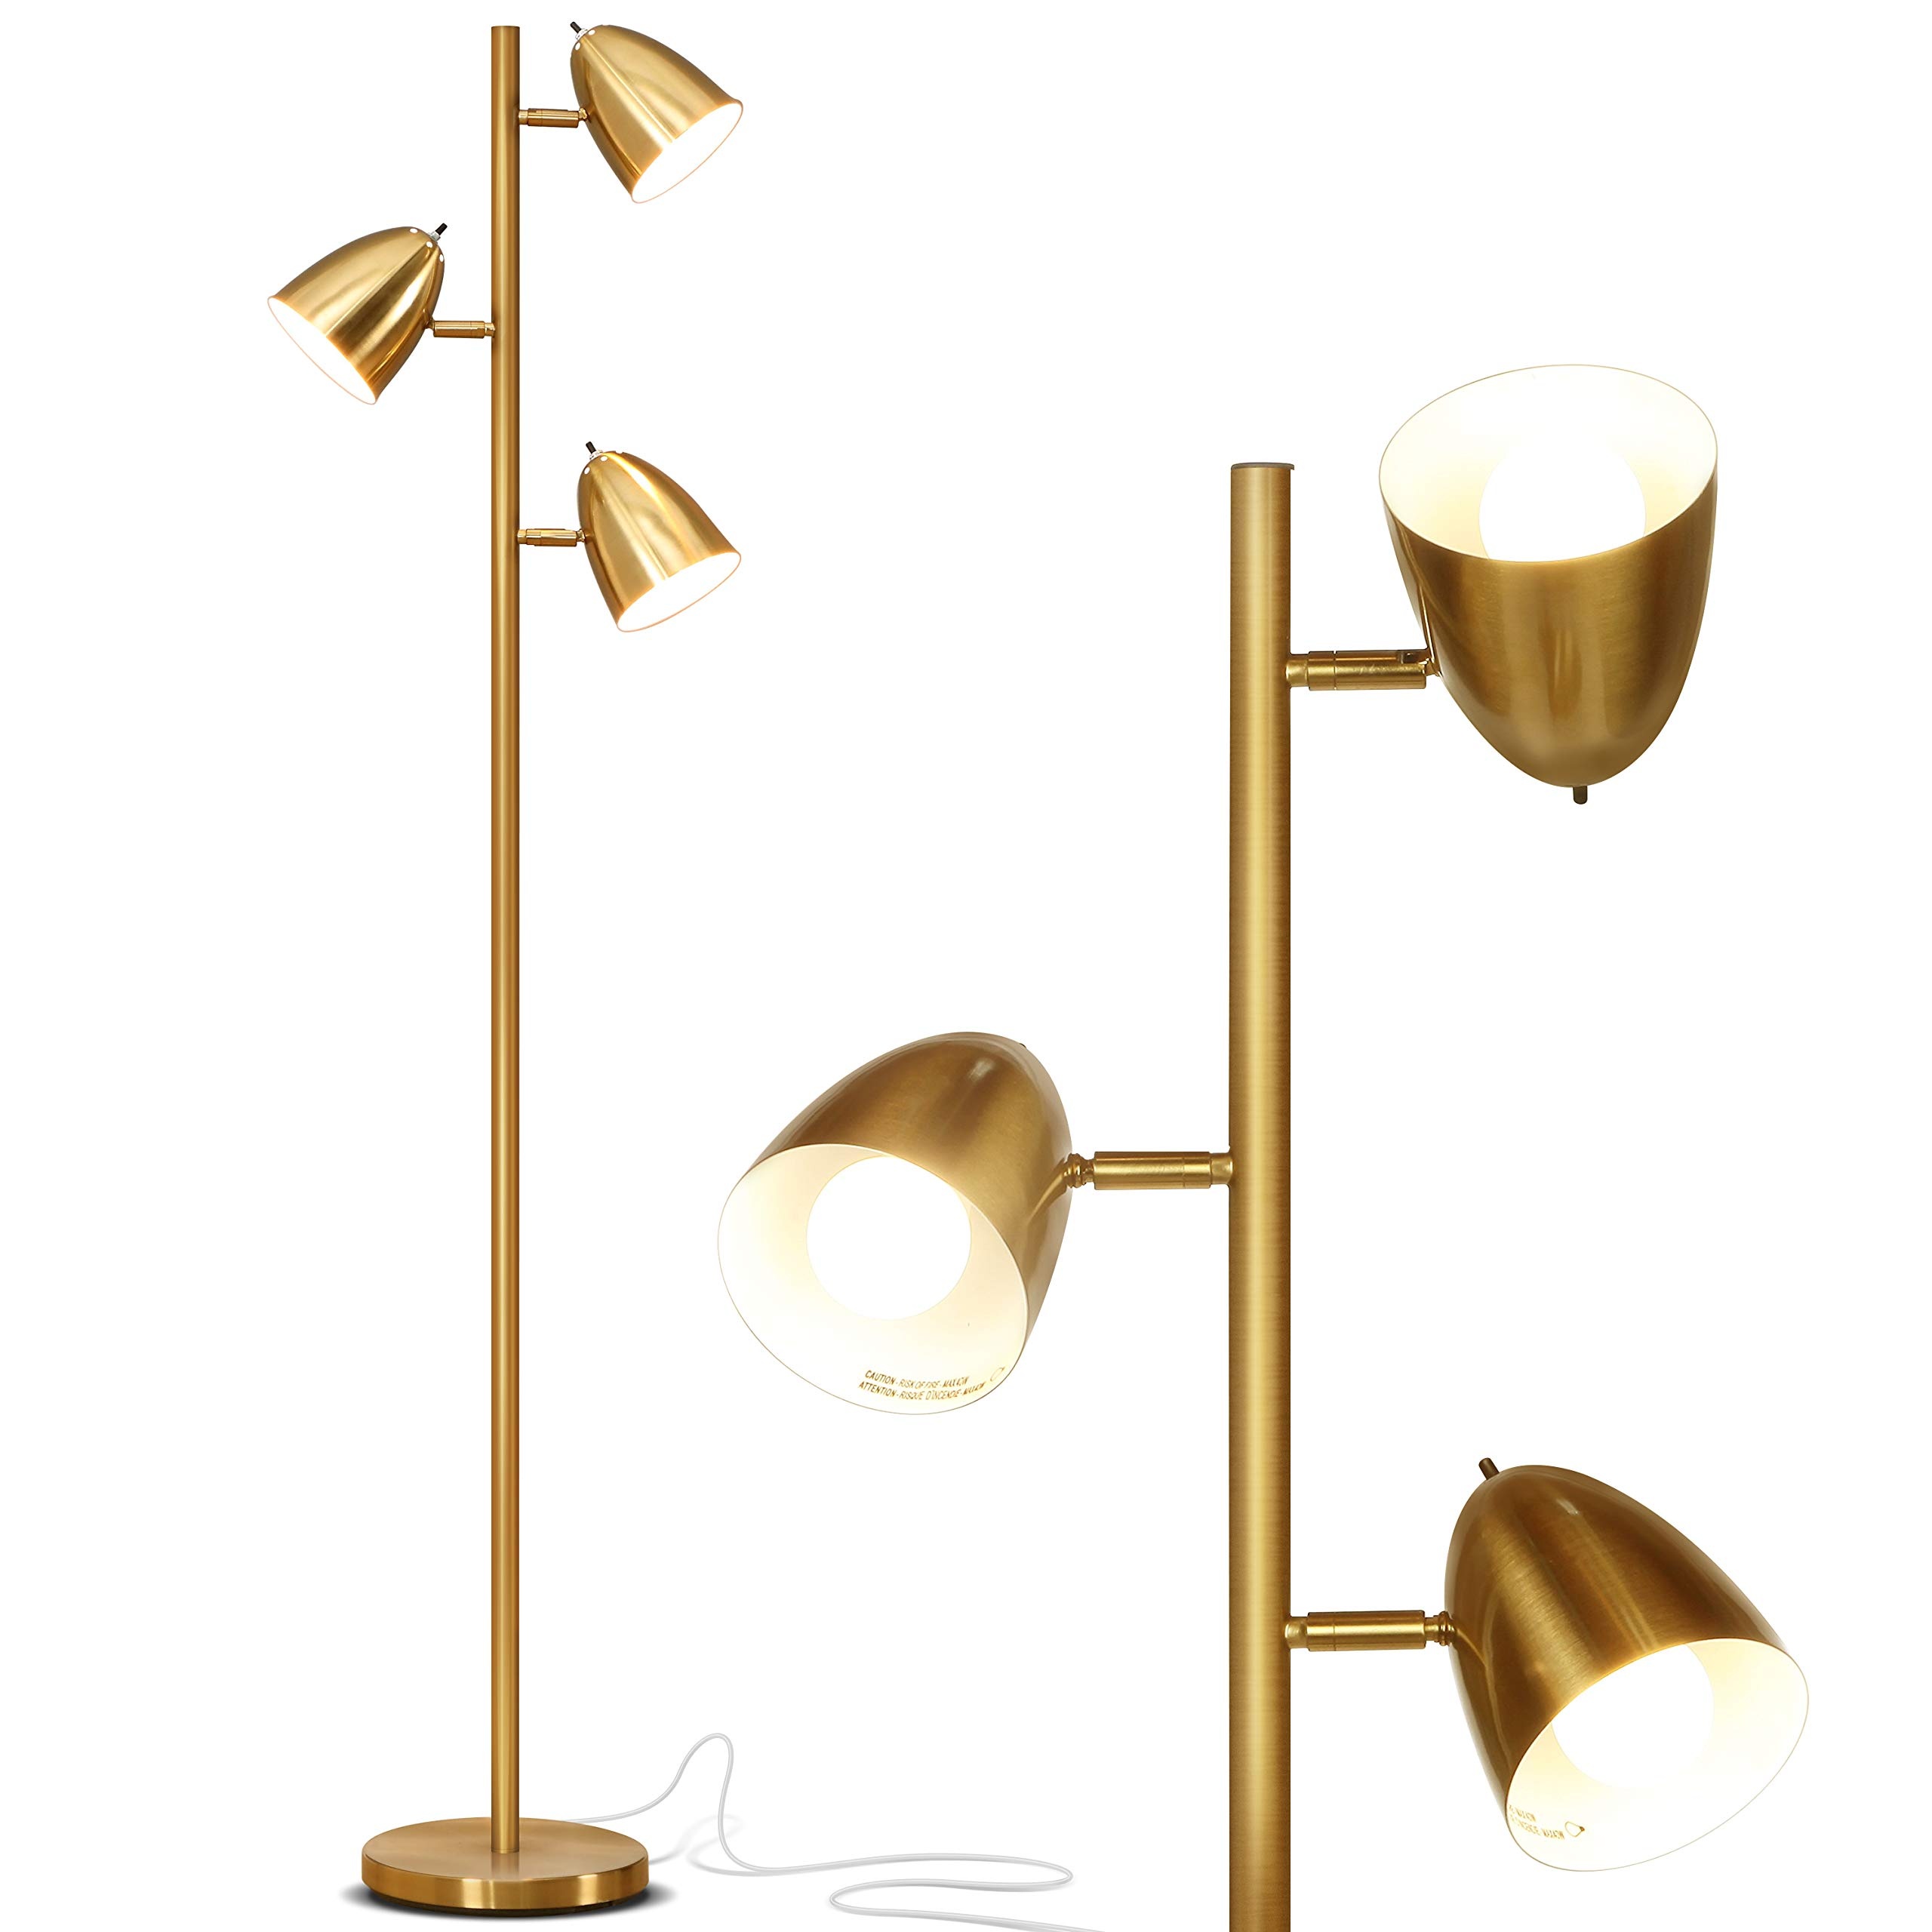 Brightech Jacob - LED Reading and Floor Lamp for Living Rooms & Bedrooms - Classy, Mid Century Modern Adjustable 3 Light Tree - Standing Tall Pole Lamp with 3 LED Bulbs - Antique Brass/Gold by Brightech (Image #1)